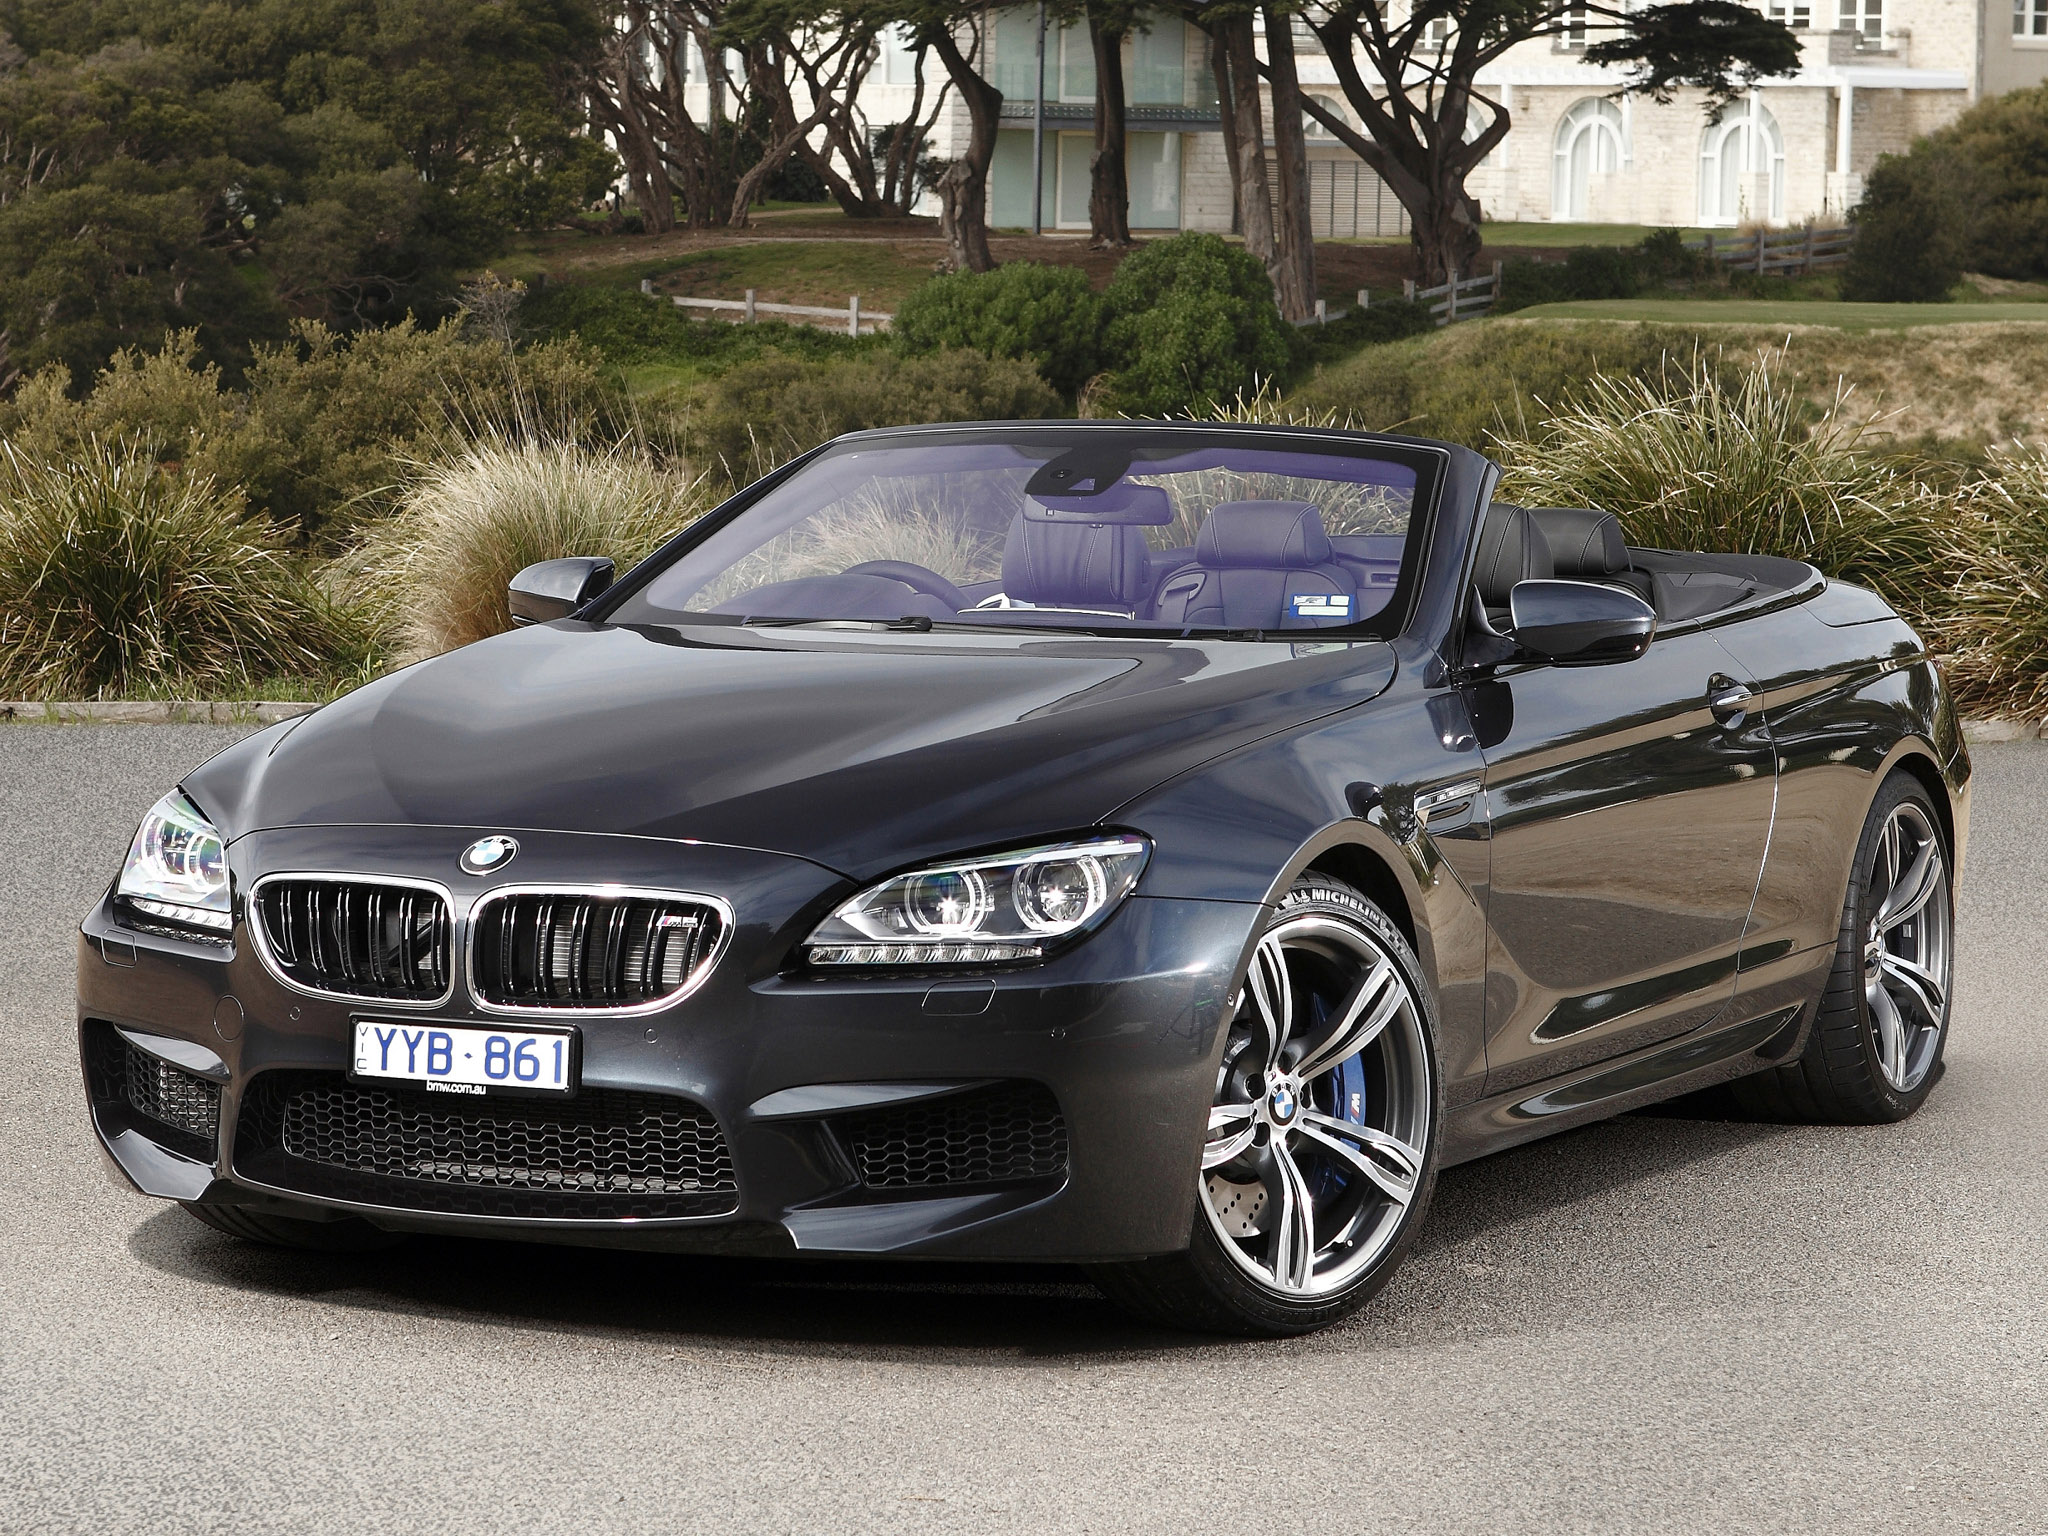 BMW 428I Convertible >> 2014 Bmw M6 convertible (f13) – pictures, information and specs - Auto-Database.com